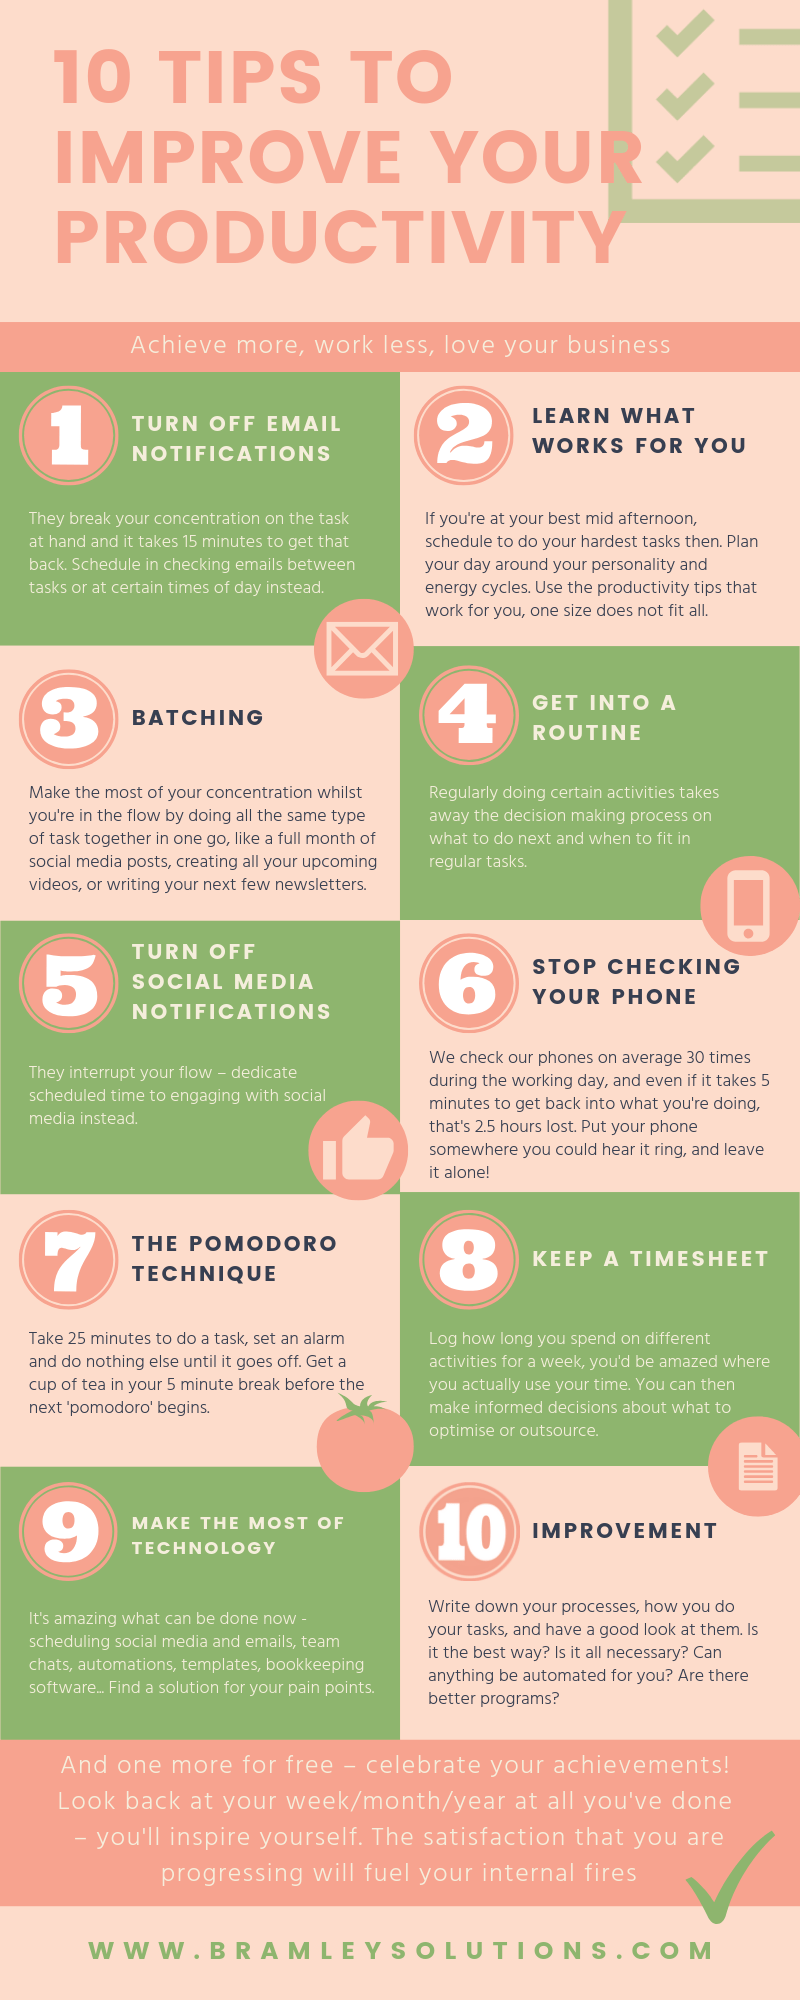 10 tips to improve productivity, infographic, turn off email notifications, batching, turn off social media notifications, stop checking your phone, the pomodoro technique, keep a timesheet, make the most of technology, process improvement